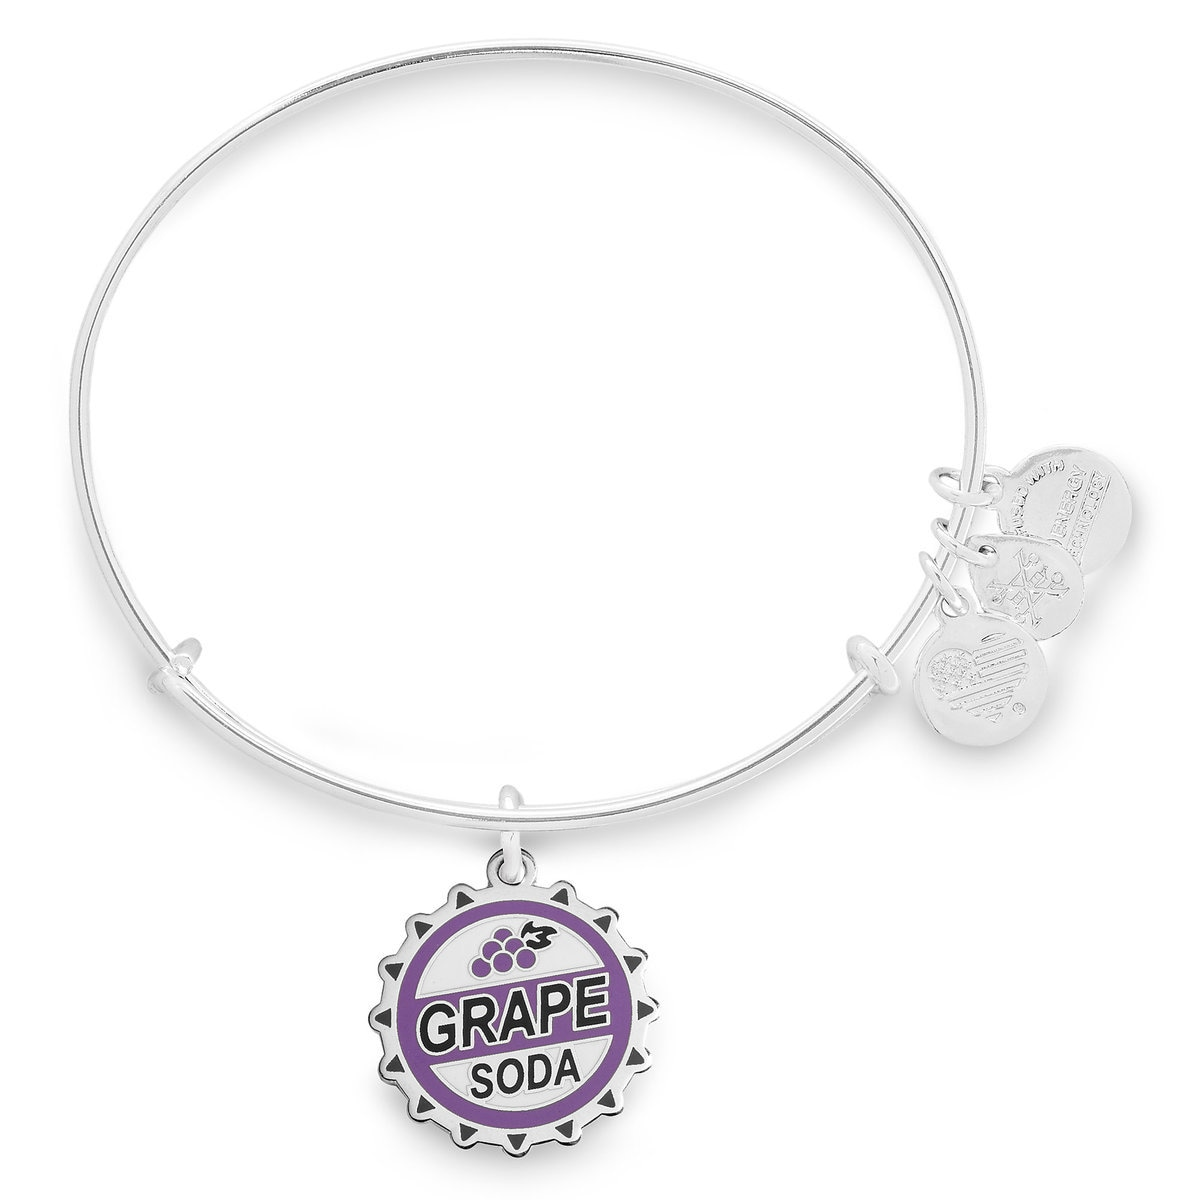 3028f6bc7 Product Image of Grape Soda Bangle by Alex and Ani - Up # 1